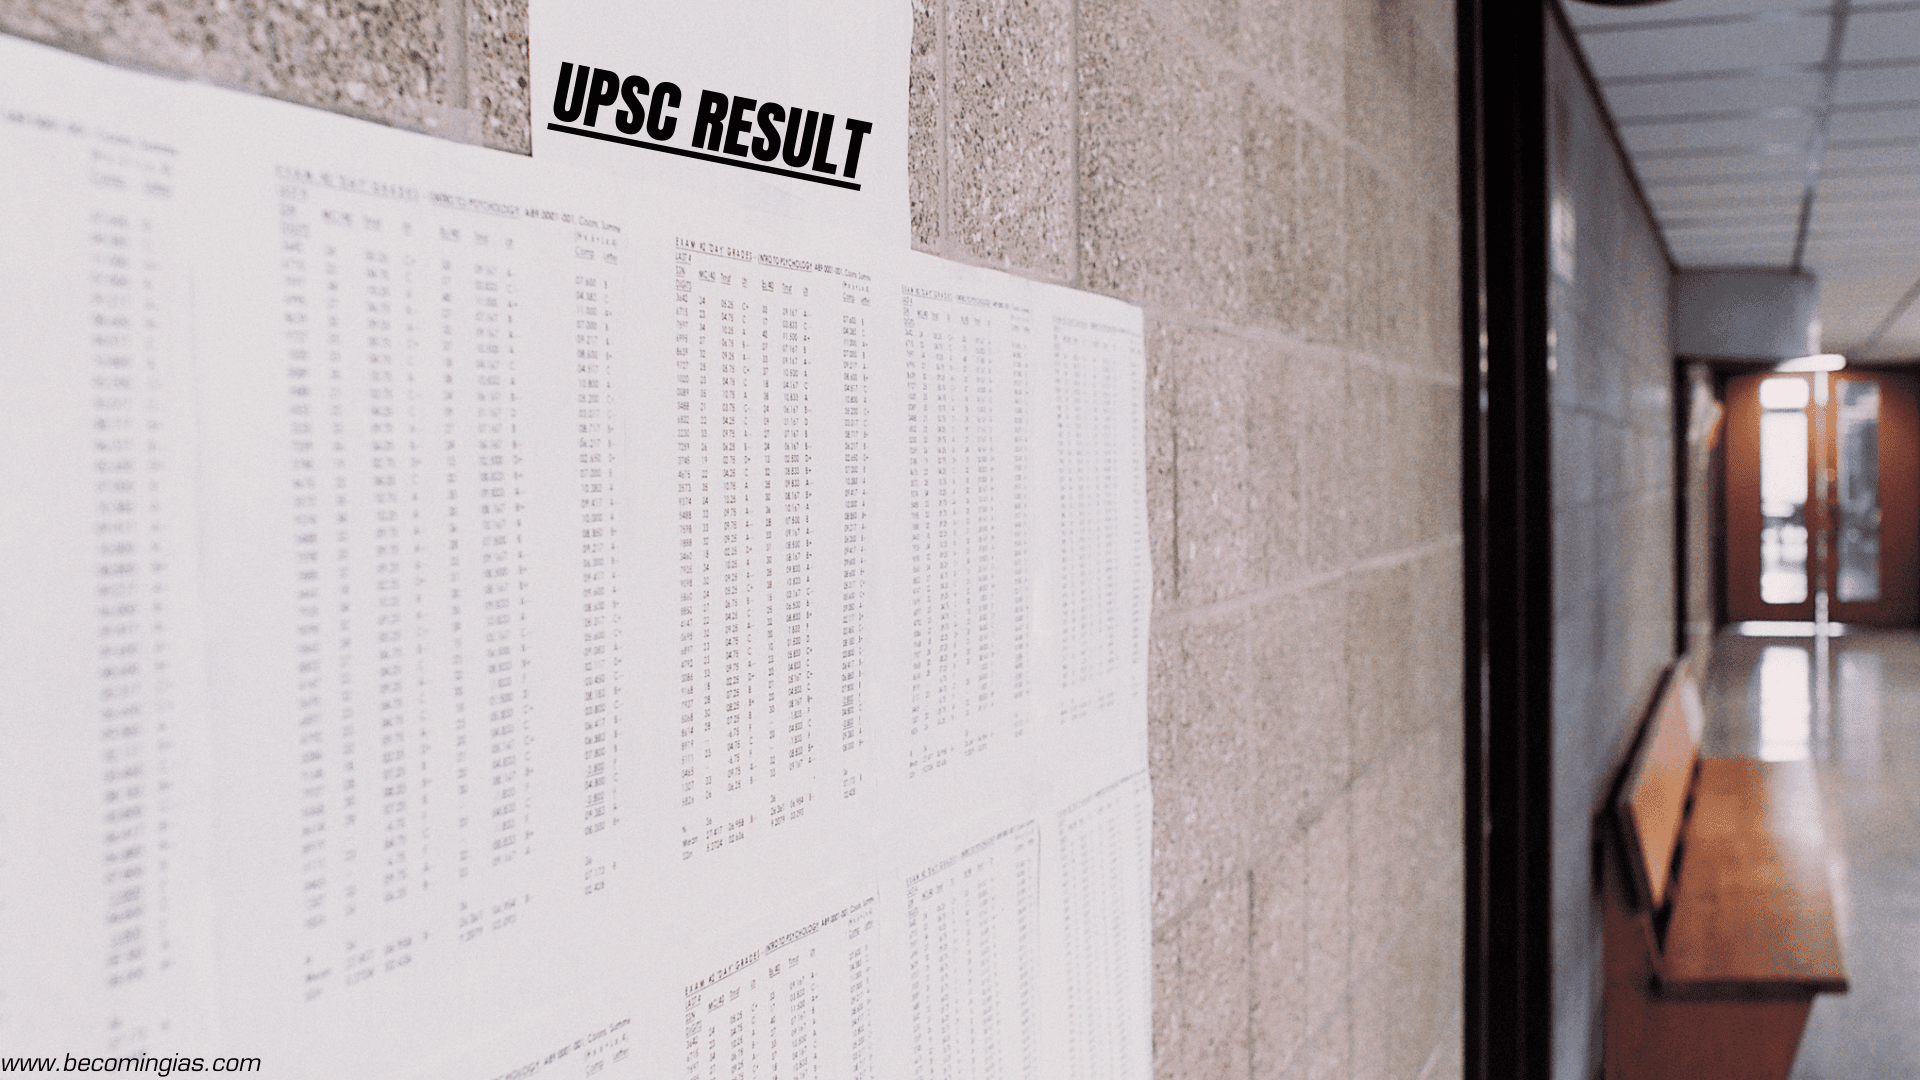 UPSC result is out: what this means for all aspirants